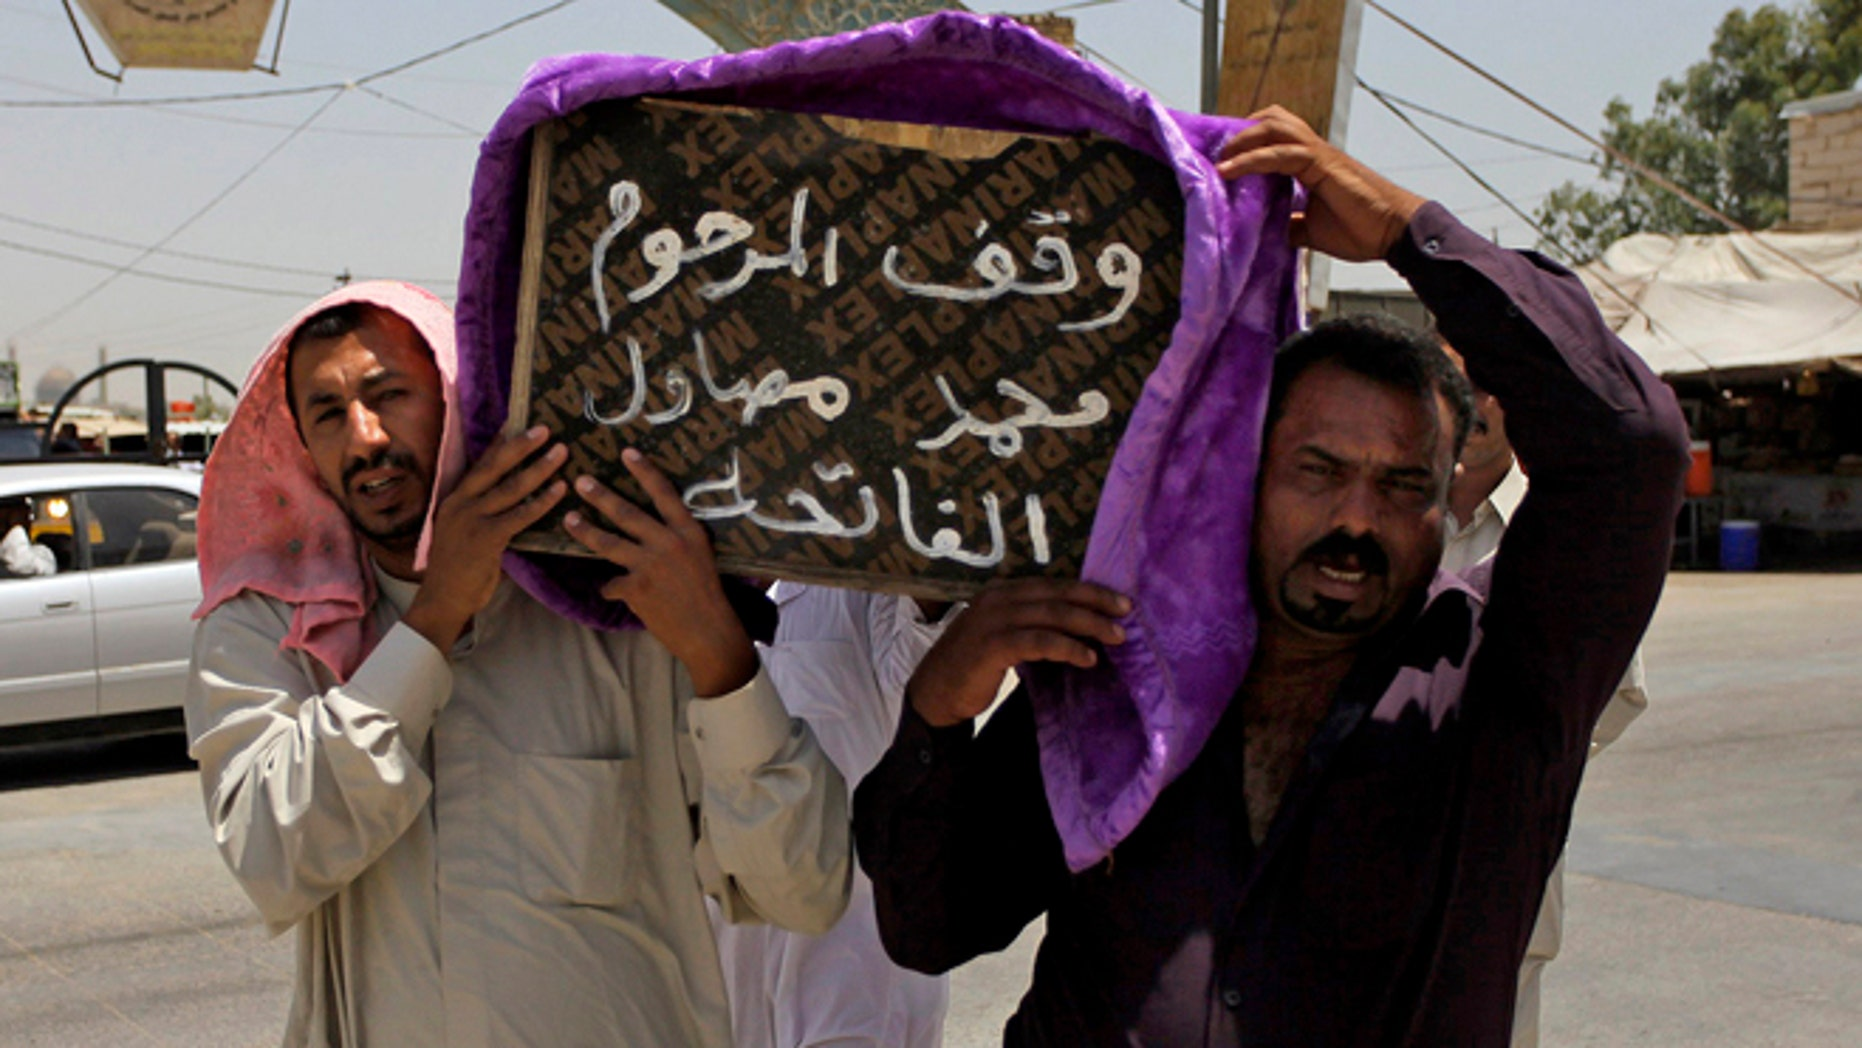 """July 1, 2014: Mourners carry the coffin of a victim of violence before his burial in the Shiite holy city of Najaf, 100 miles south of Baghdad, Iraq. Violence has claimed the lives of 2,417 Iraqis in June, making it the deadliest month so far this year, the United Nations said on Tuesday, underlining the daunting challenge the government faces as it struggles to confront Islamic extremists who have seized large swaths of territory in the north and west. Arabic on the coffin reads, """"they stood for the late Mohammed Mosawel."""""""